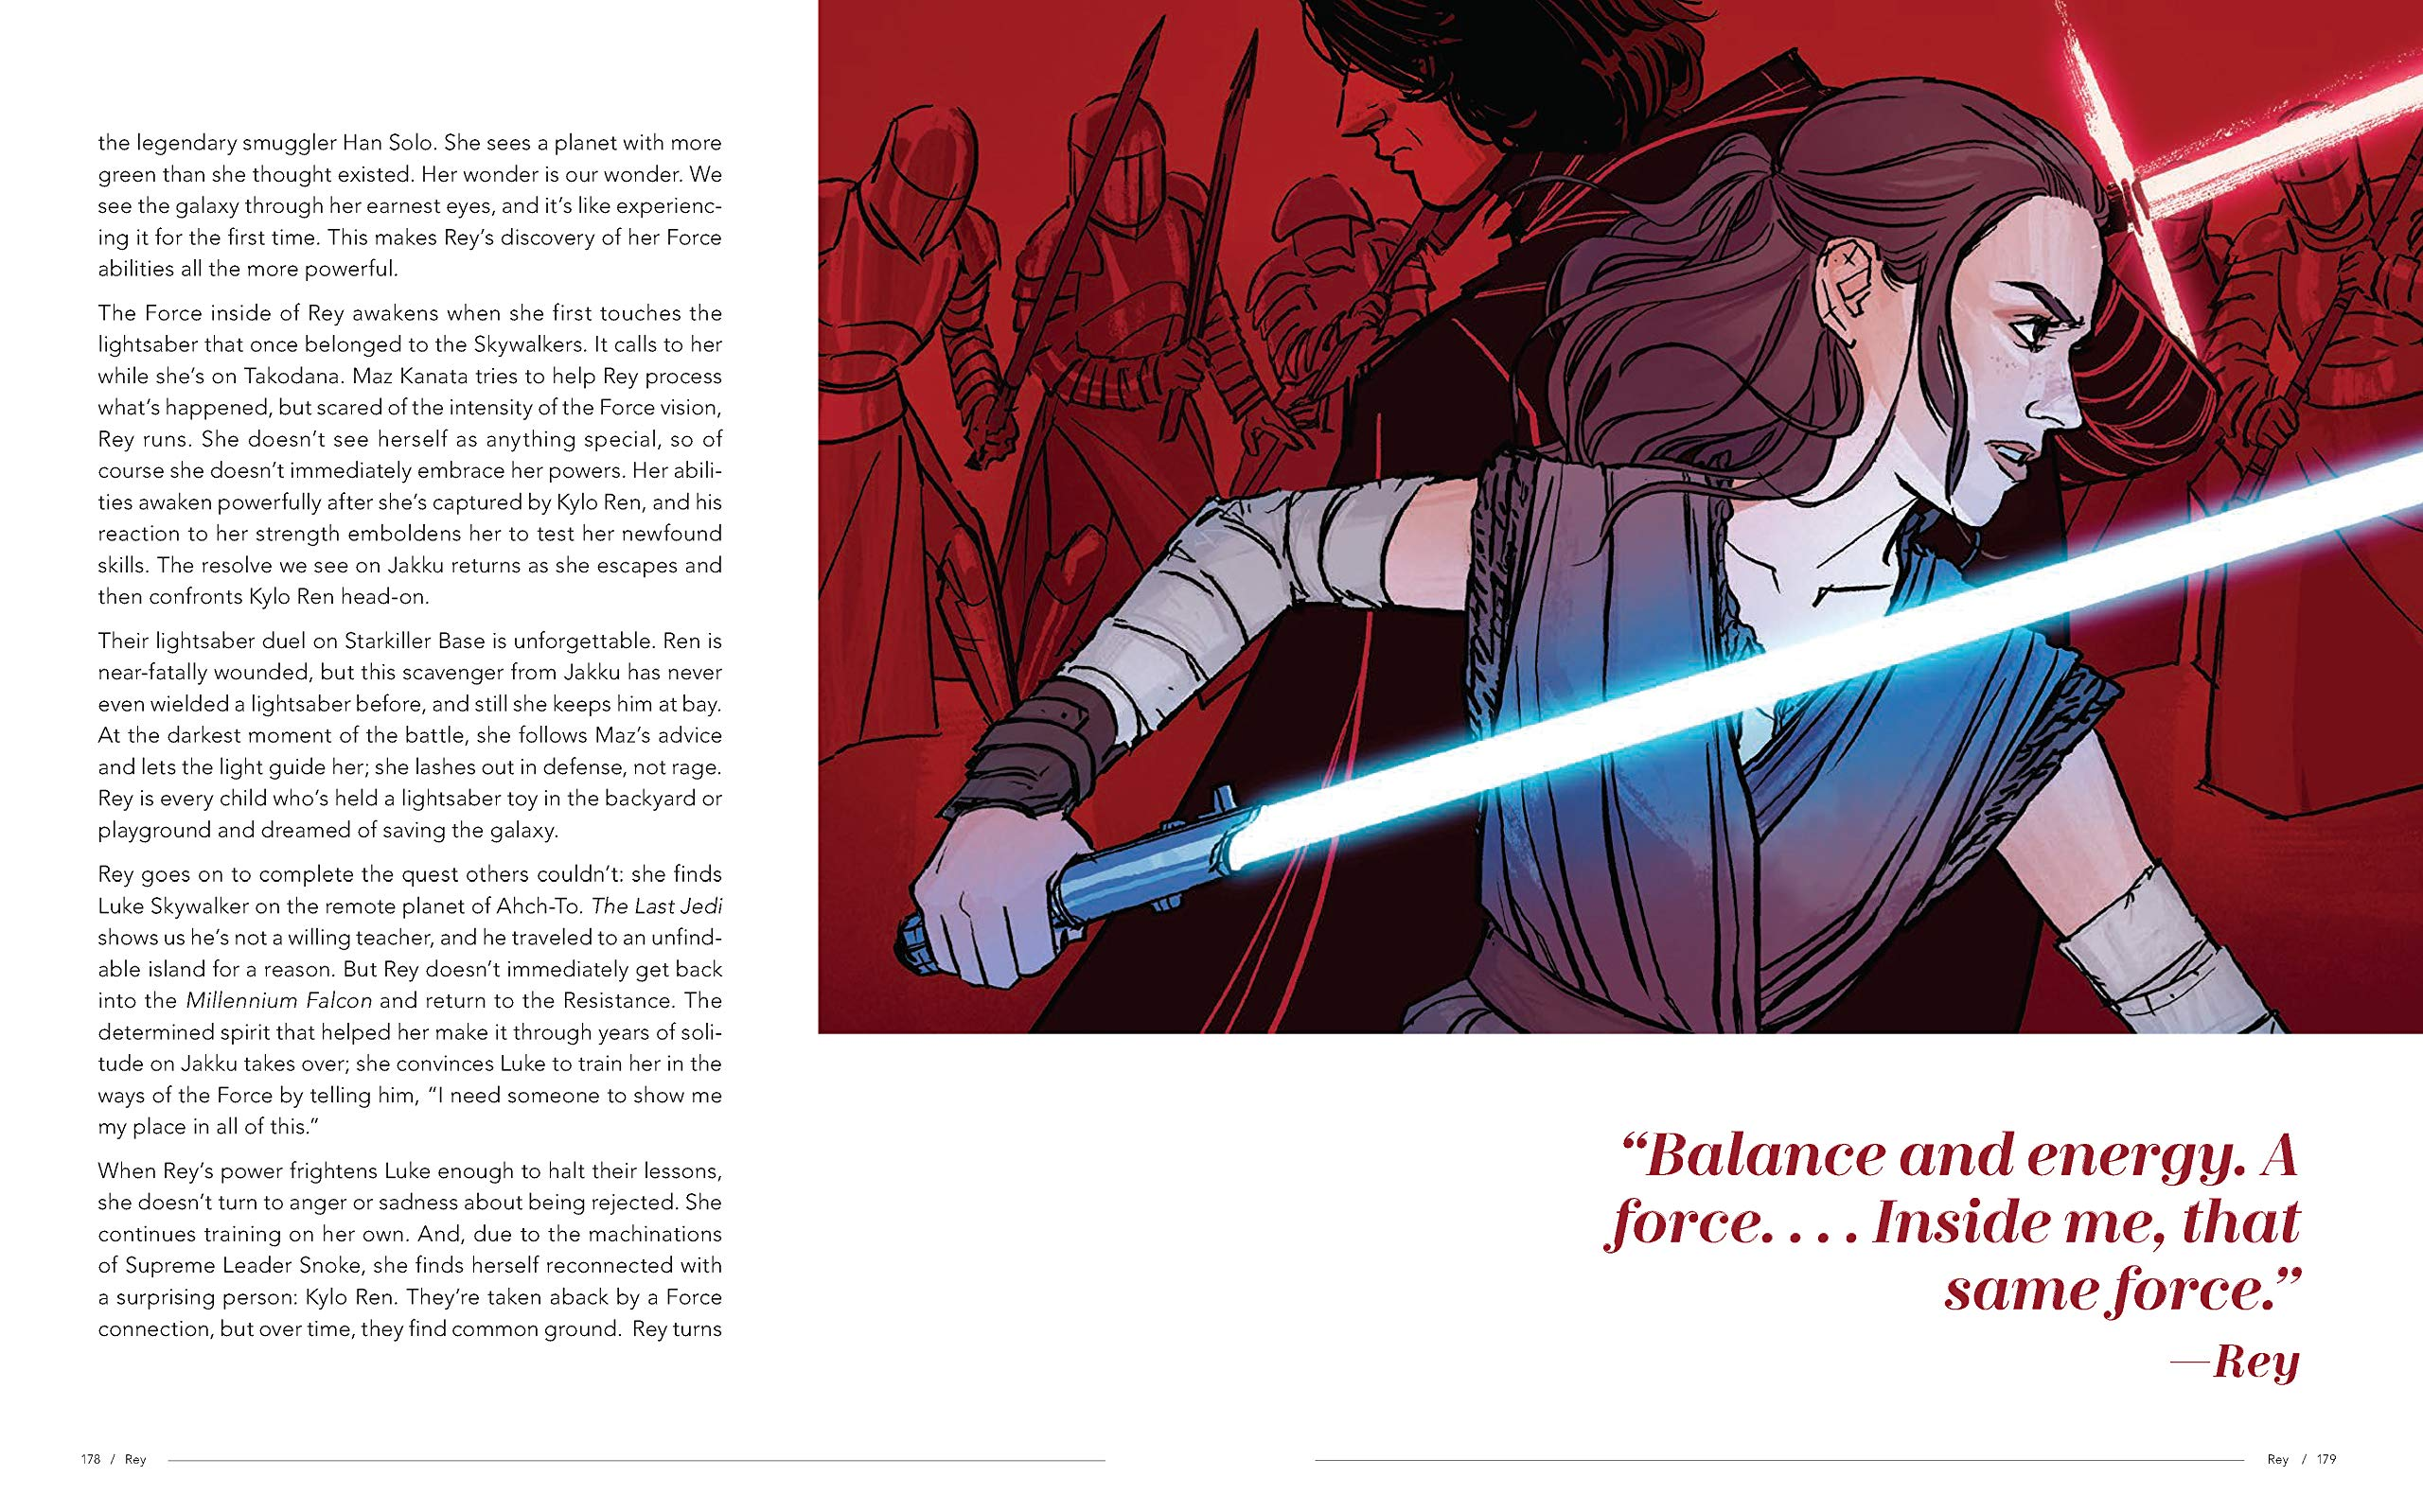 Star Wars: Women of the Galaxy (Star Wars Character Encyclopedia